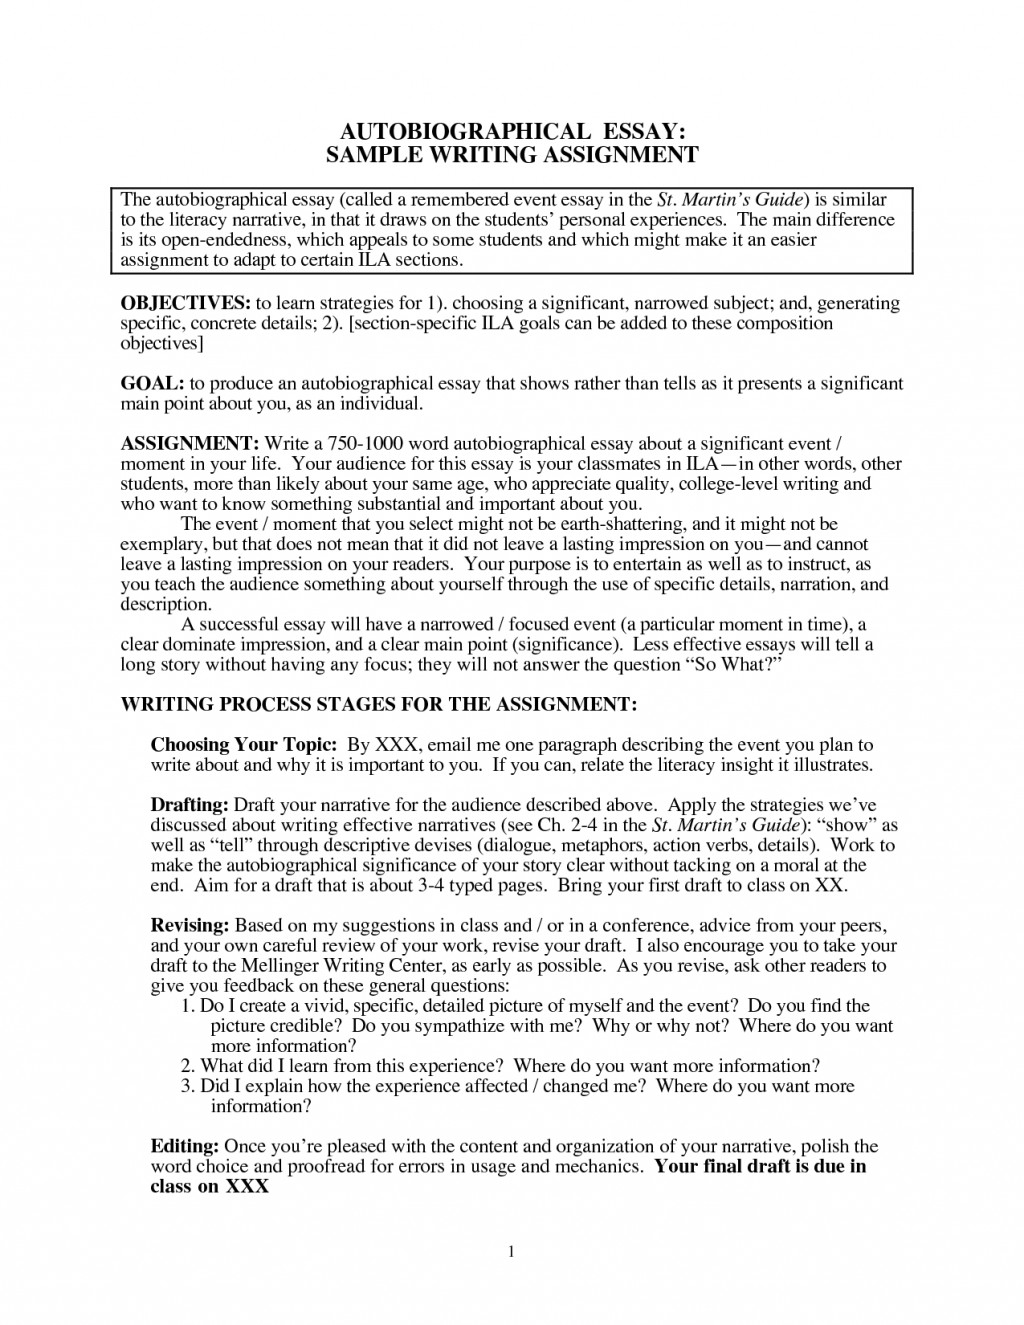 003 Sample Autobiographic Sketch College Autobiography Essay Example Knowing Imagine For Awesome How To Write Examples Singular Start An Annotated Bibliography A Good Scholarship Large